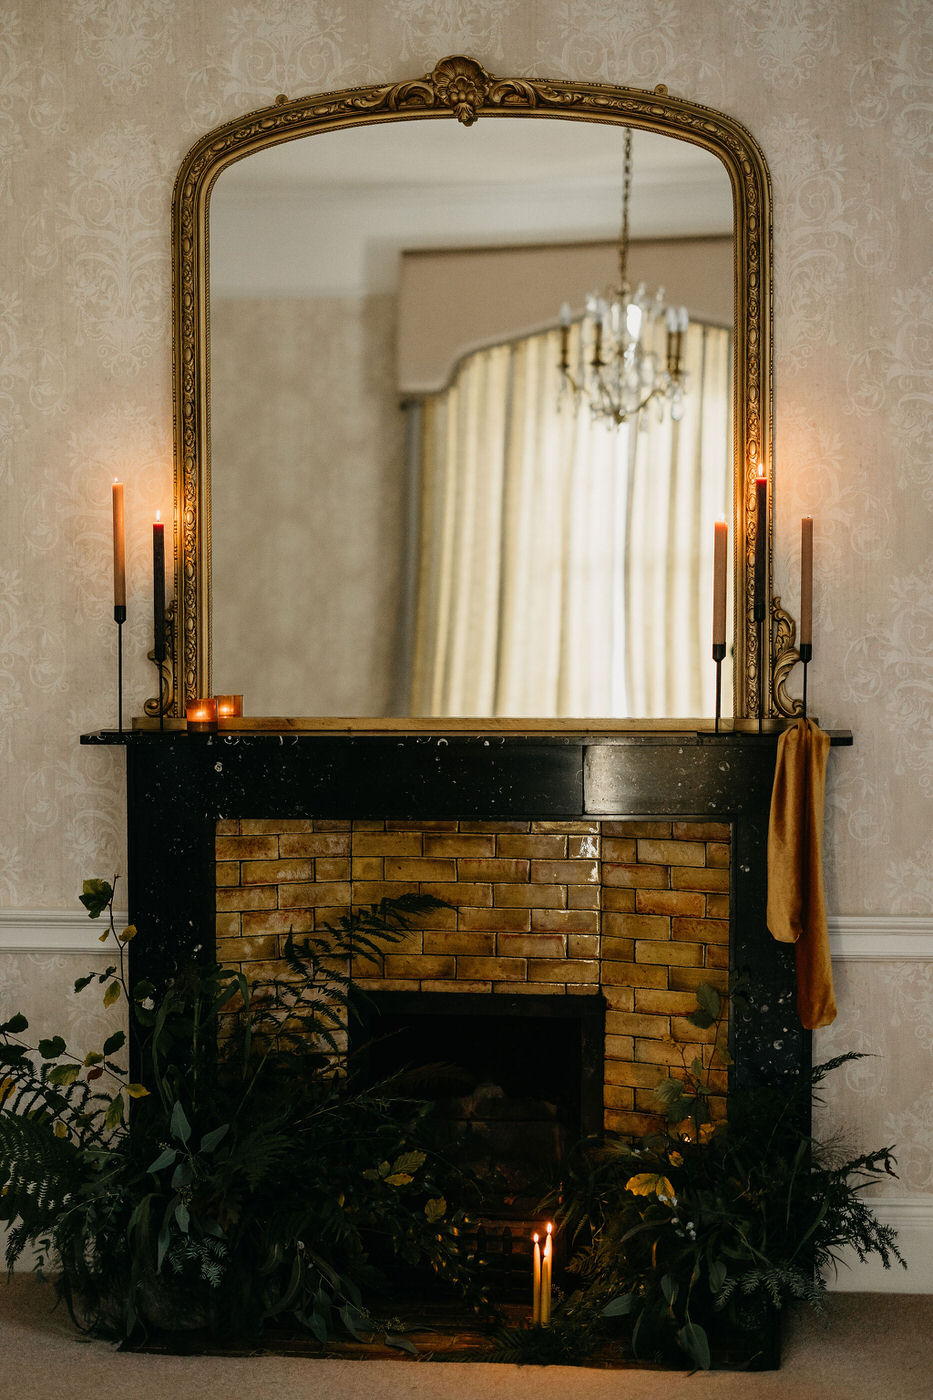 Mantelpiece with candles in traditional Scotland wedding venue